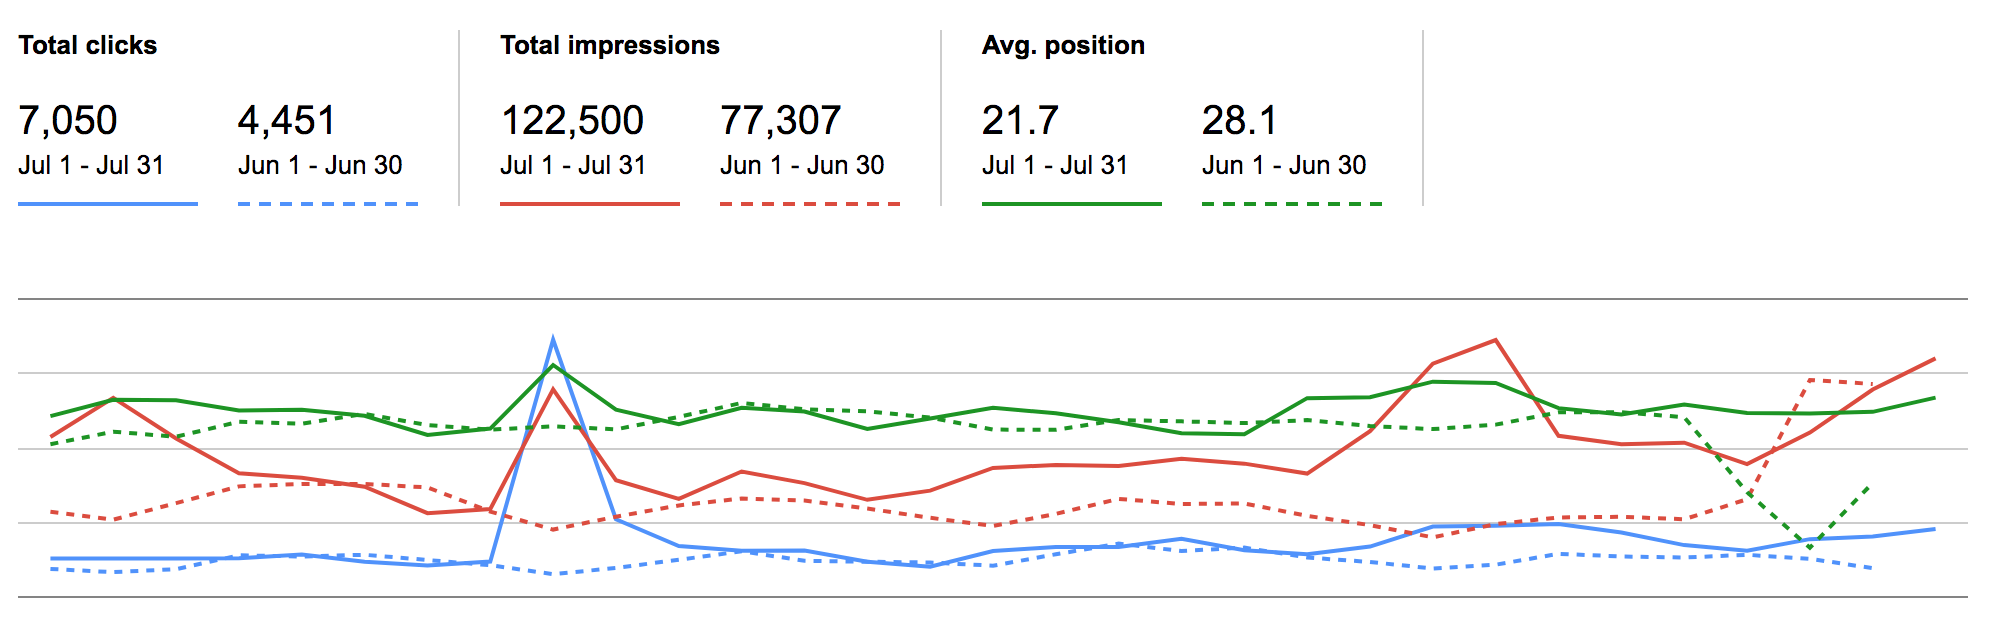 Clicks and Impressions June-July